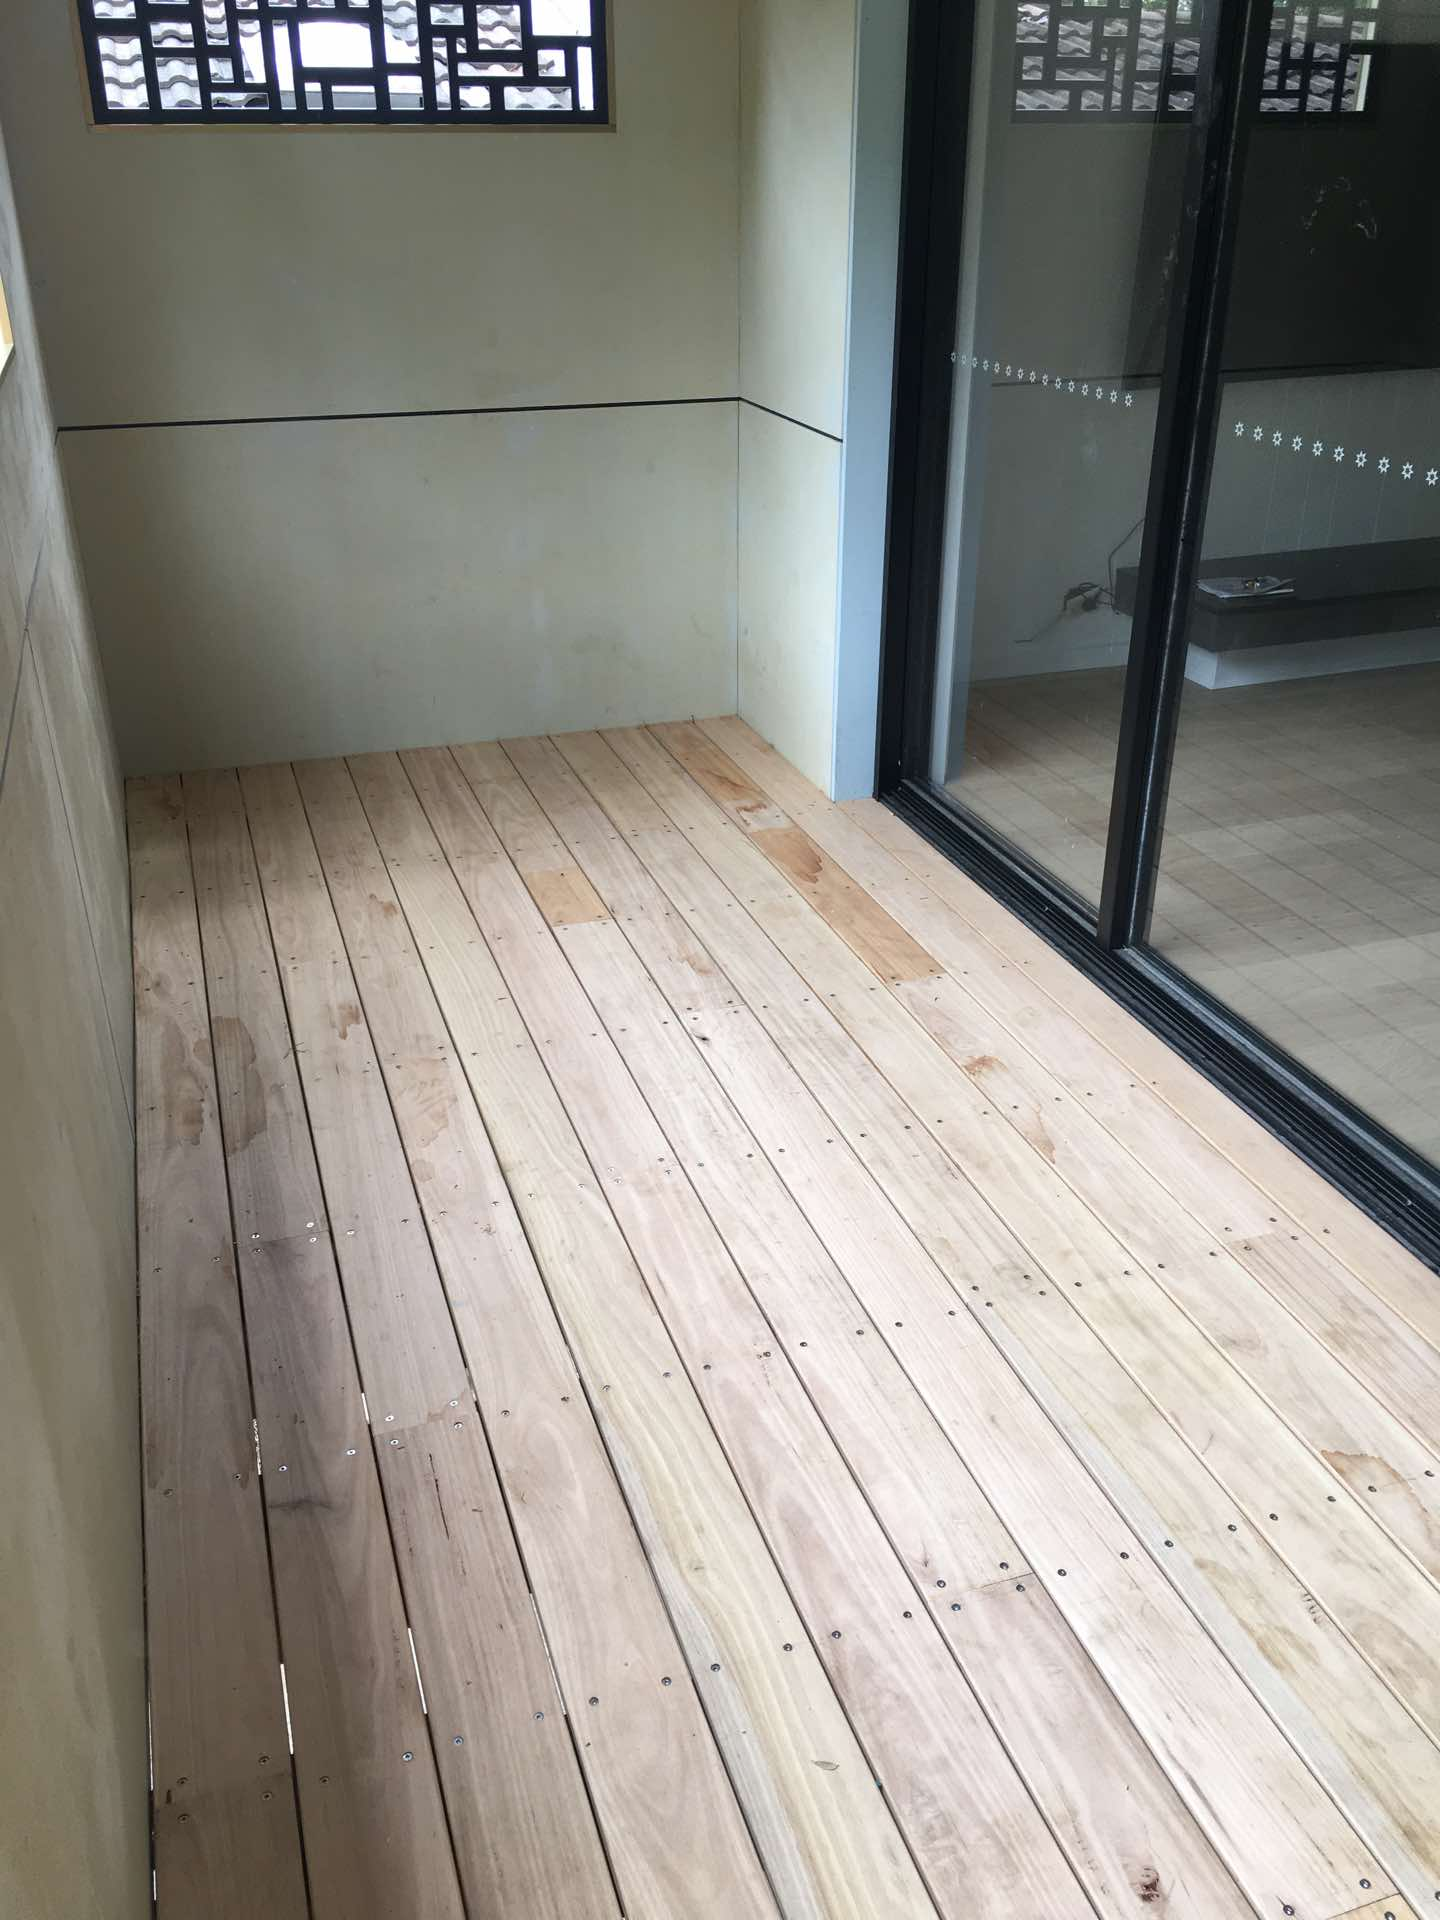 135 x 25 blackbutt decking ready for sanding and oiling St Ives Chase, NSW